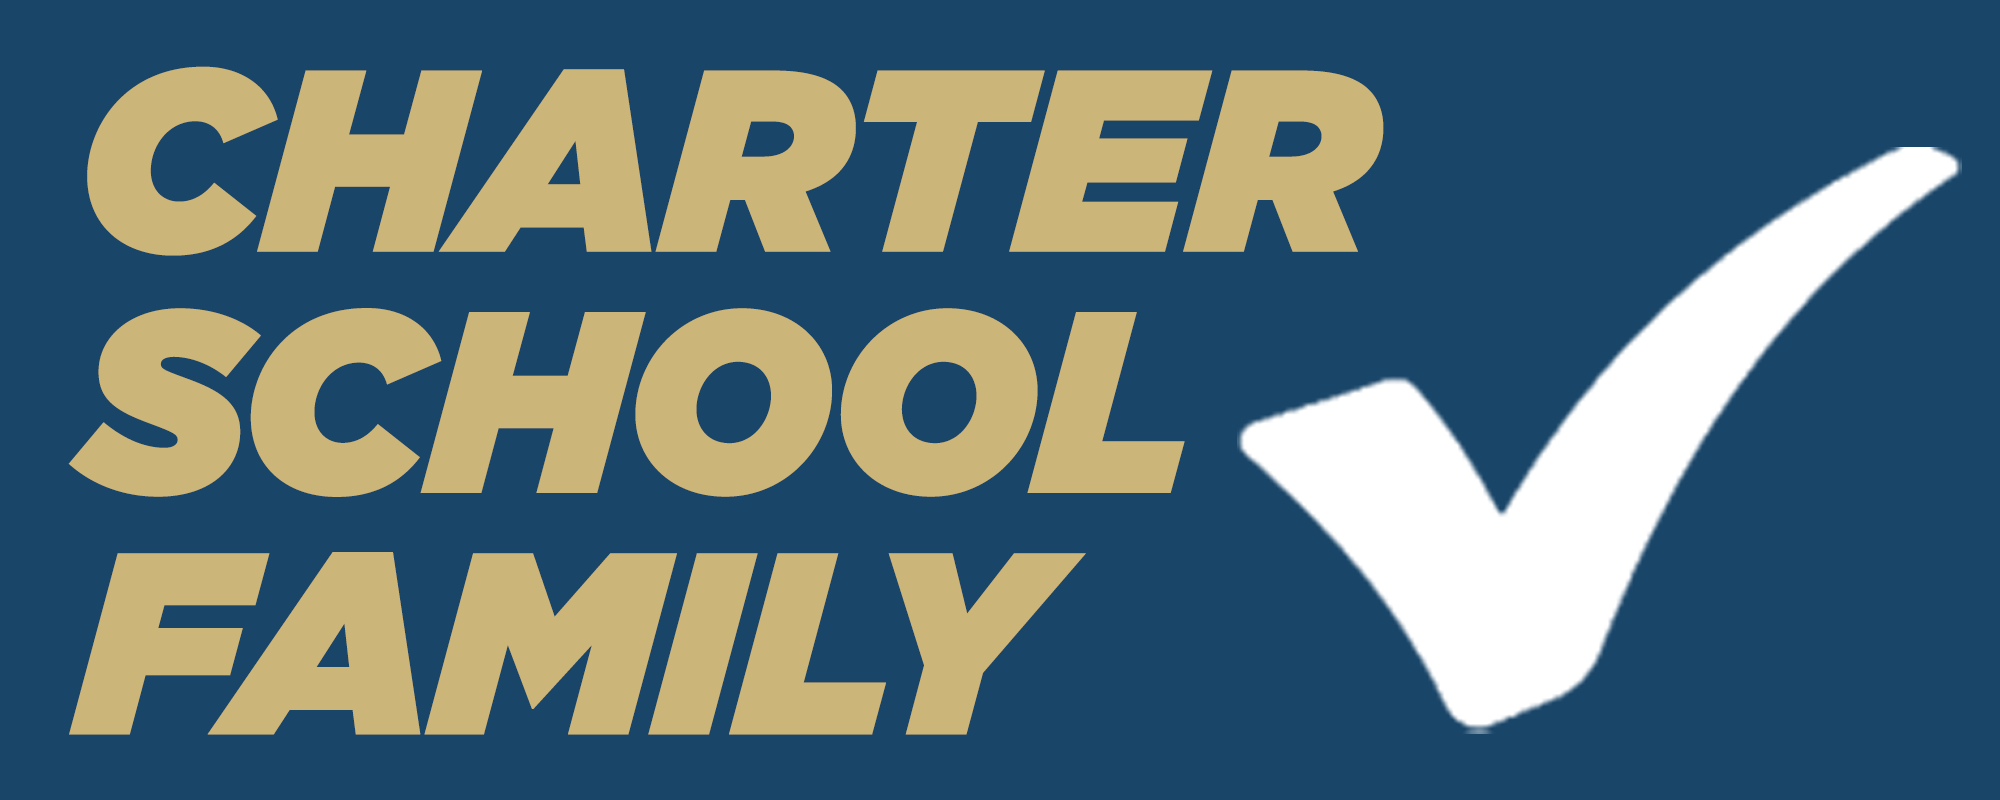 Charter_School_Family.png